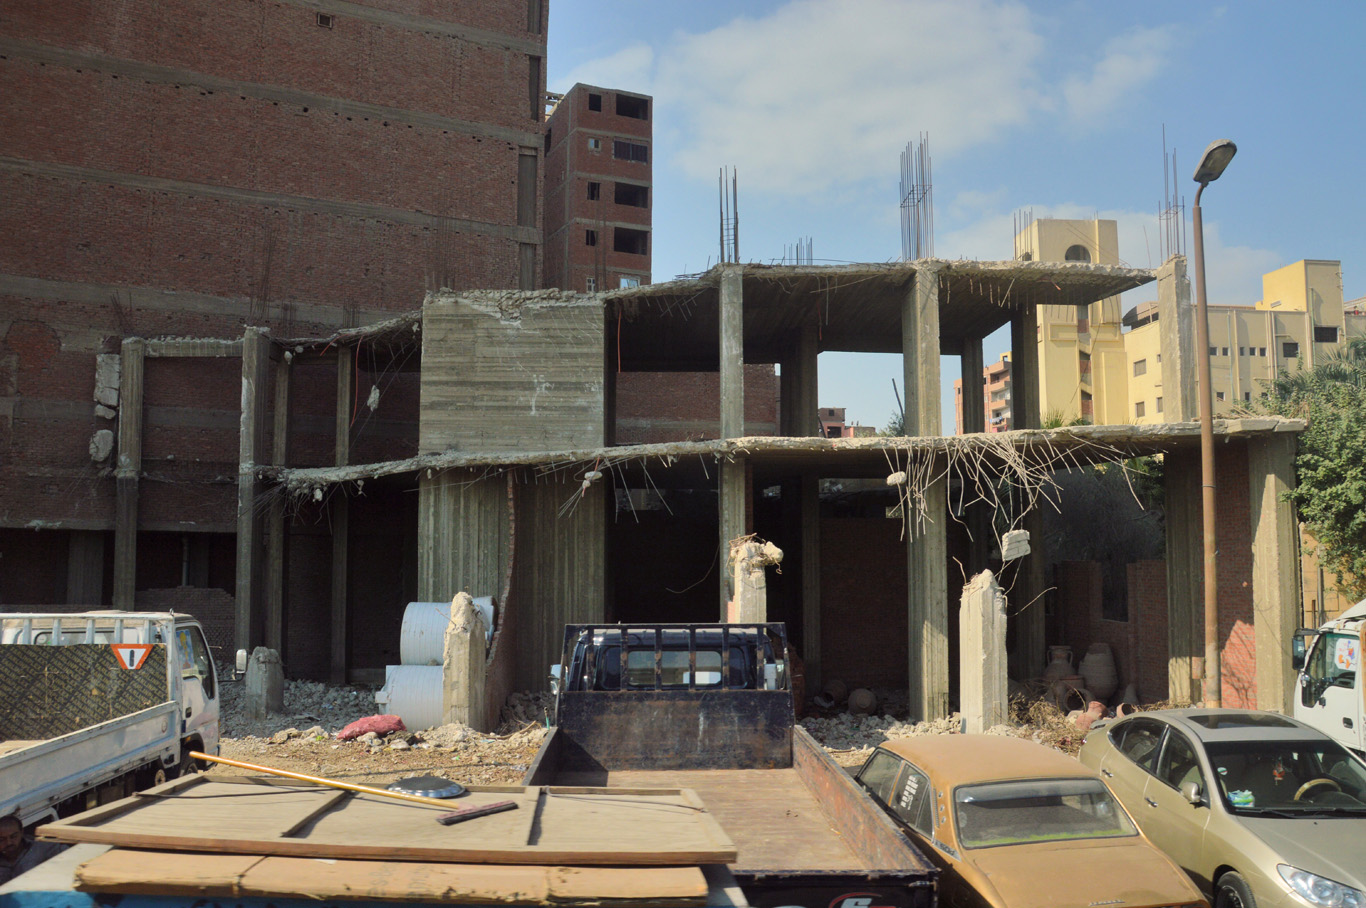 Unfinished buildings in Cairo